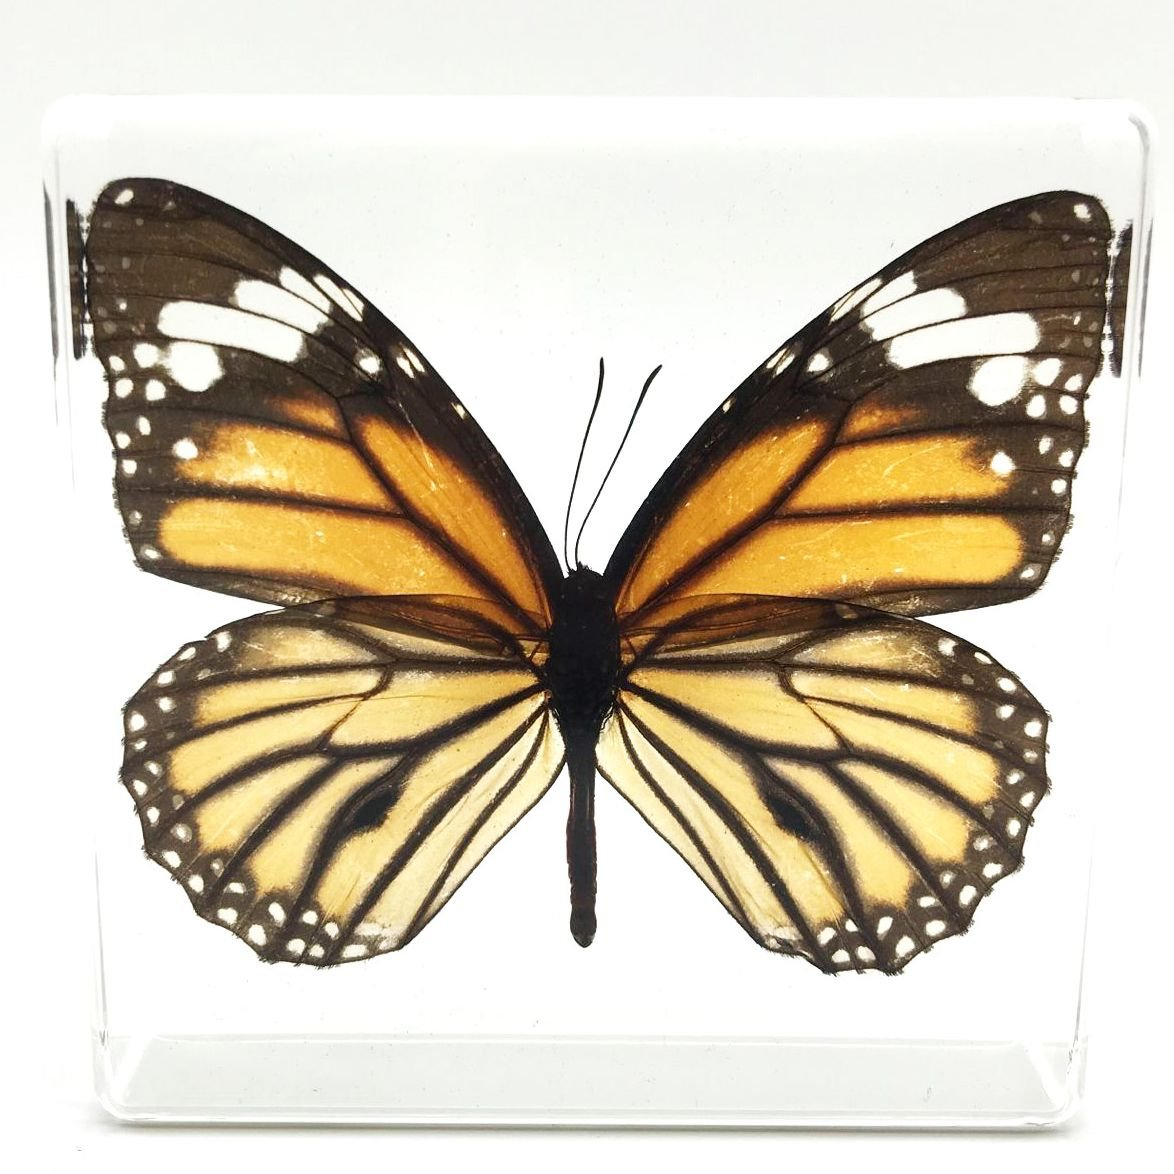 Tiger Butterfly Paperweight Paperweights Specimen Specimens Collection Display(3''x3''x1'') by Amazingbug